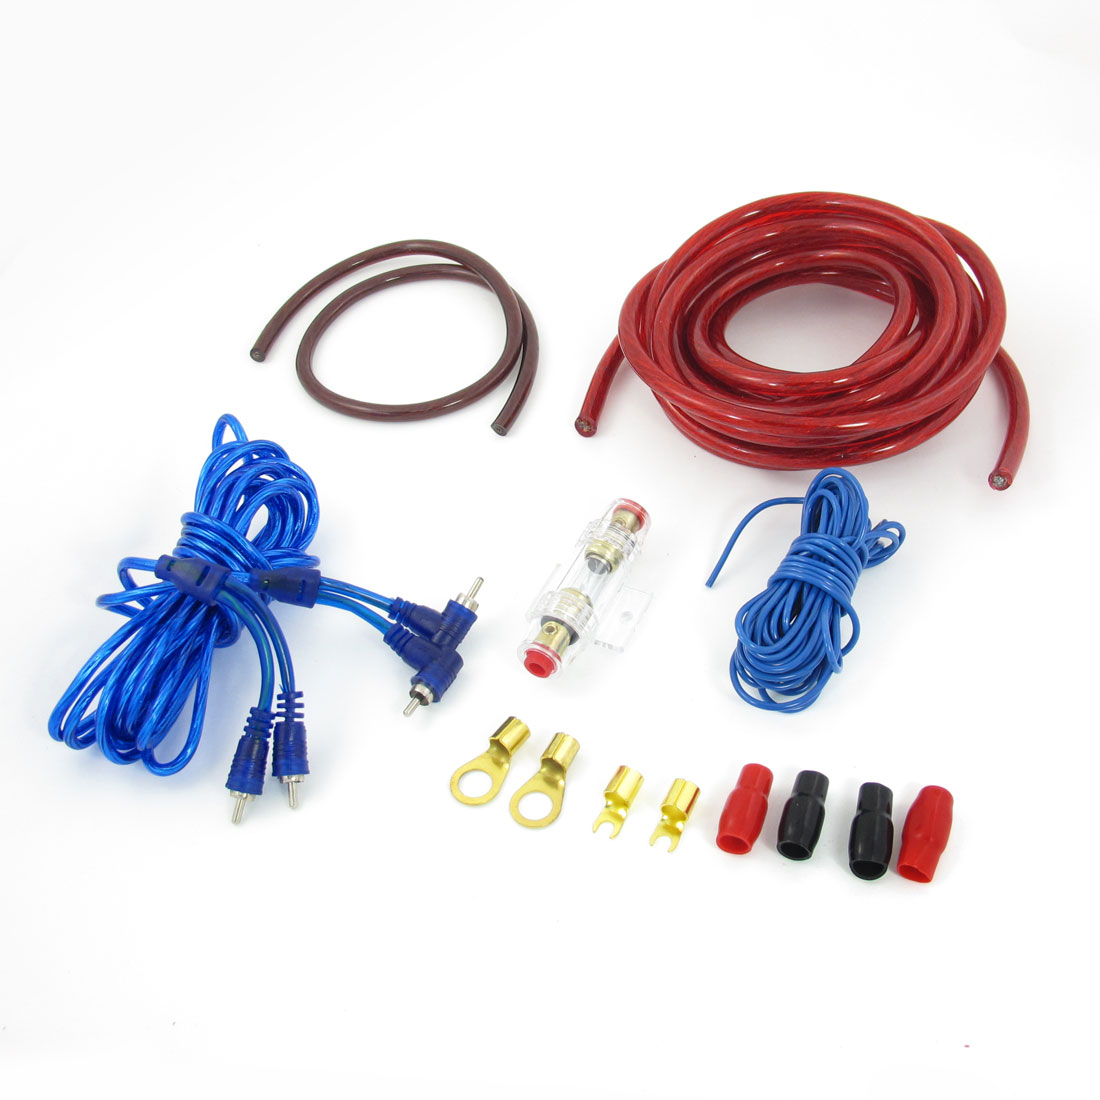 Car Auto Cables Amplifier Rca Speaker Wiring Cable Ground Wire Kit Set Amp